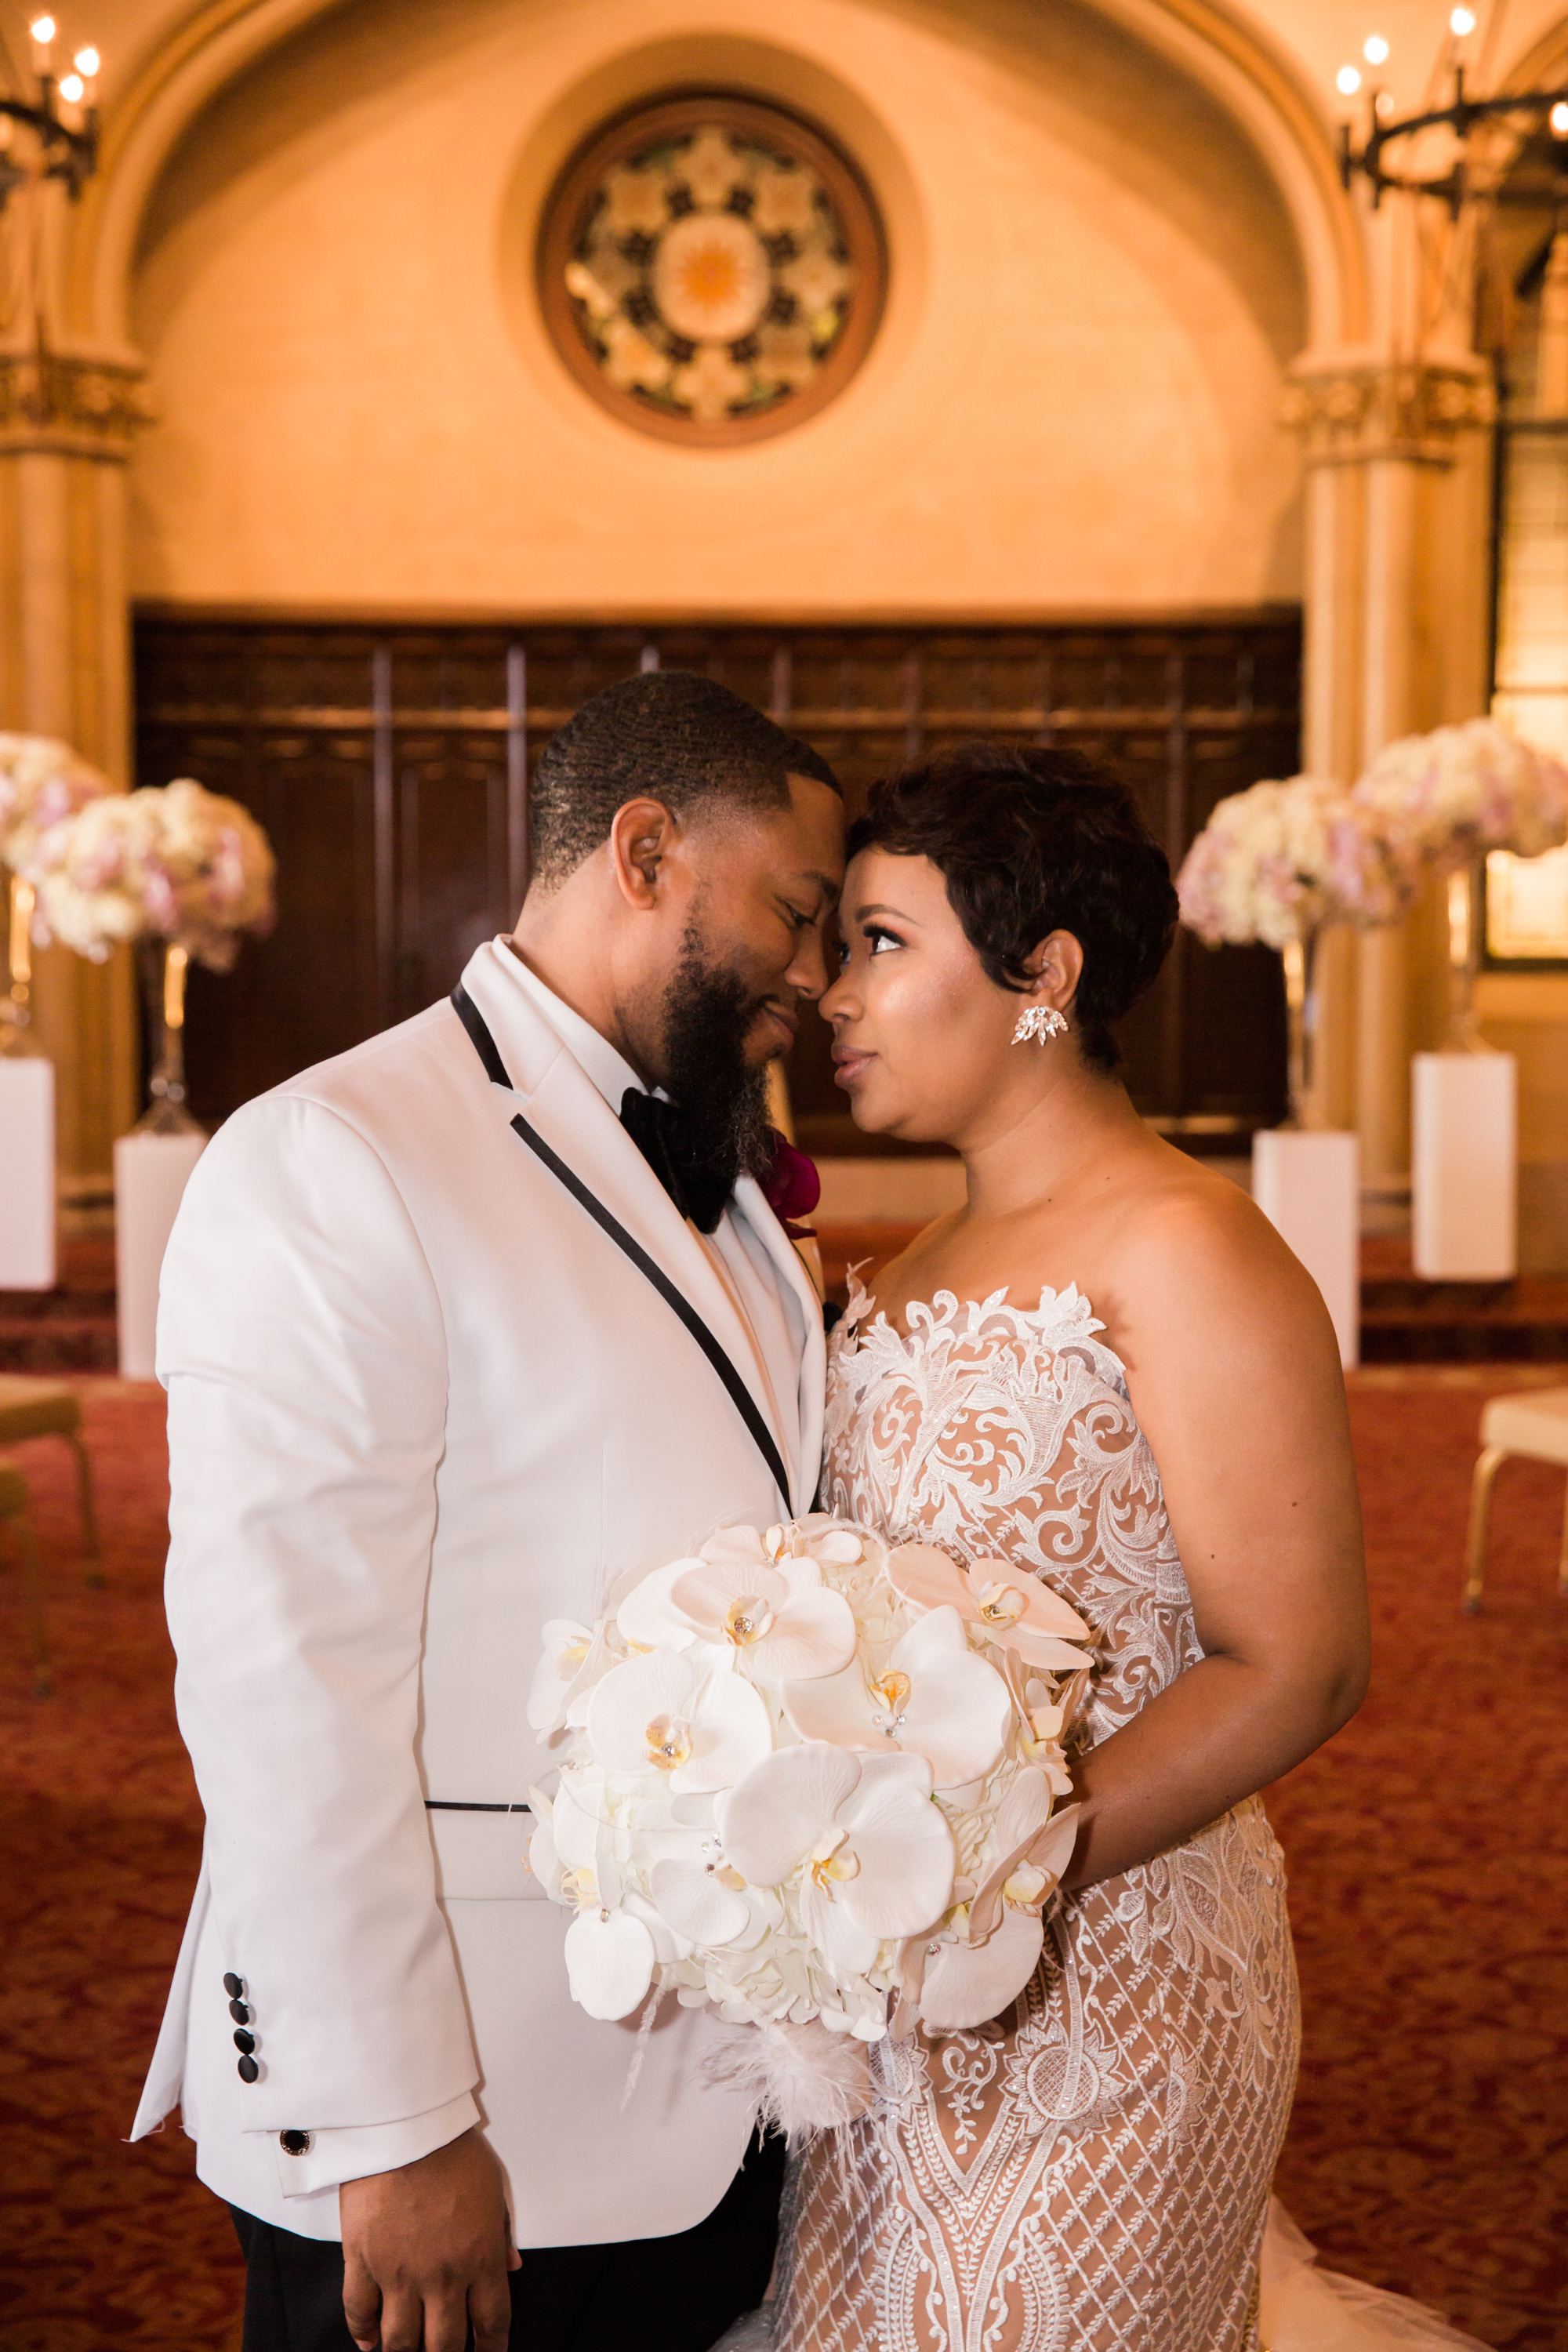 Best Classic Black Bride at The Grand Baltimore Maryland Husband and Wife Wedding Photographers Megapixels Media (53 of 98).jpg